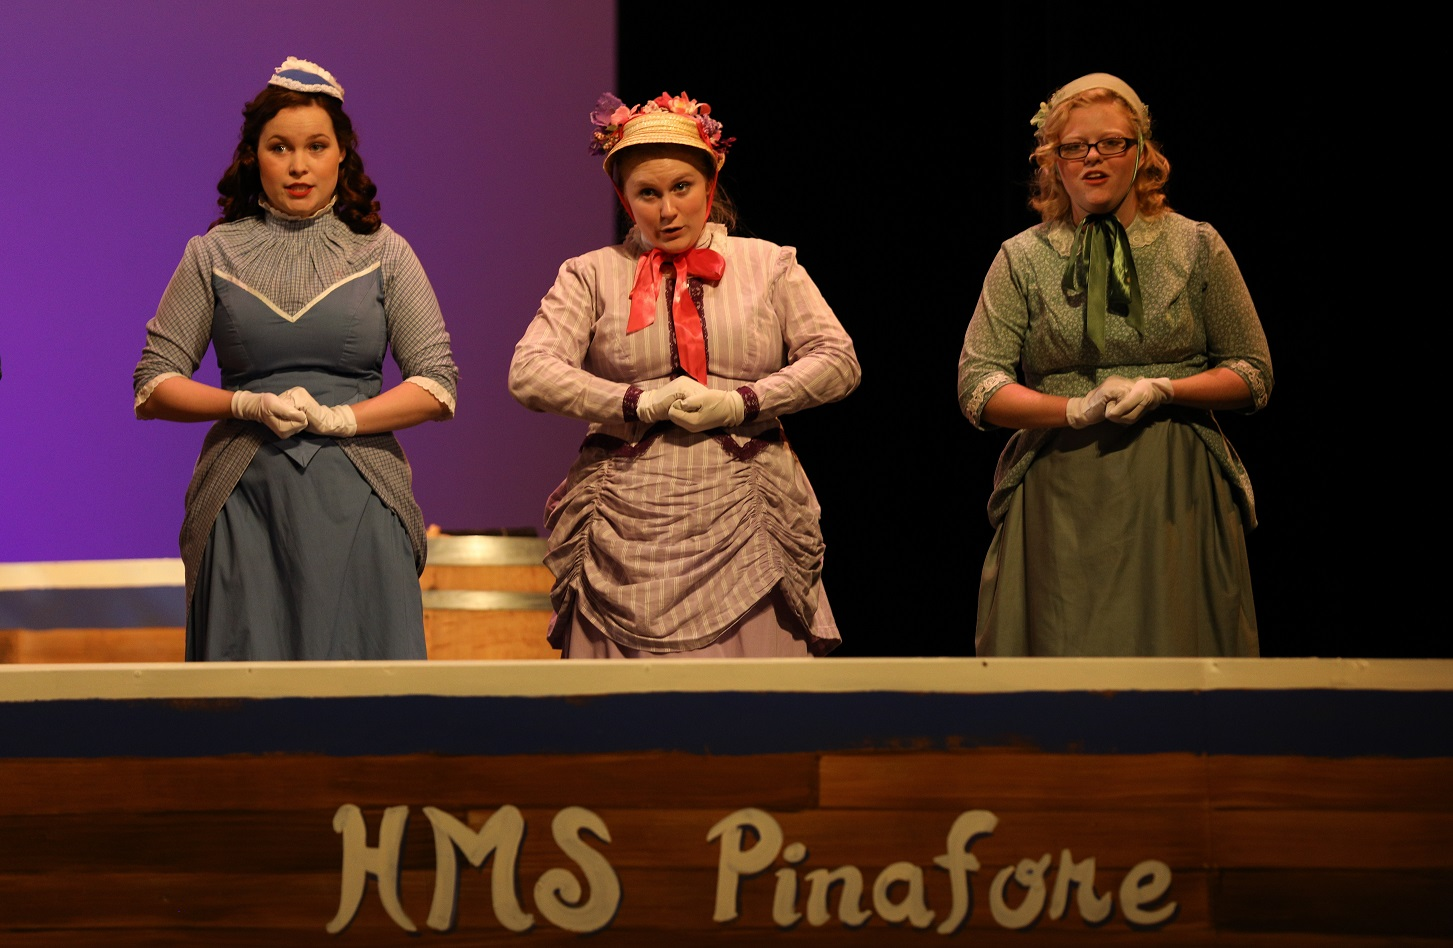 20170322_Music_Opera_HMS_Pinafore-159